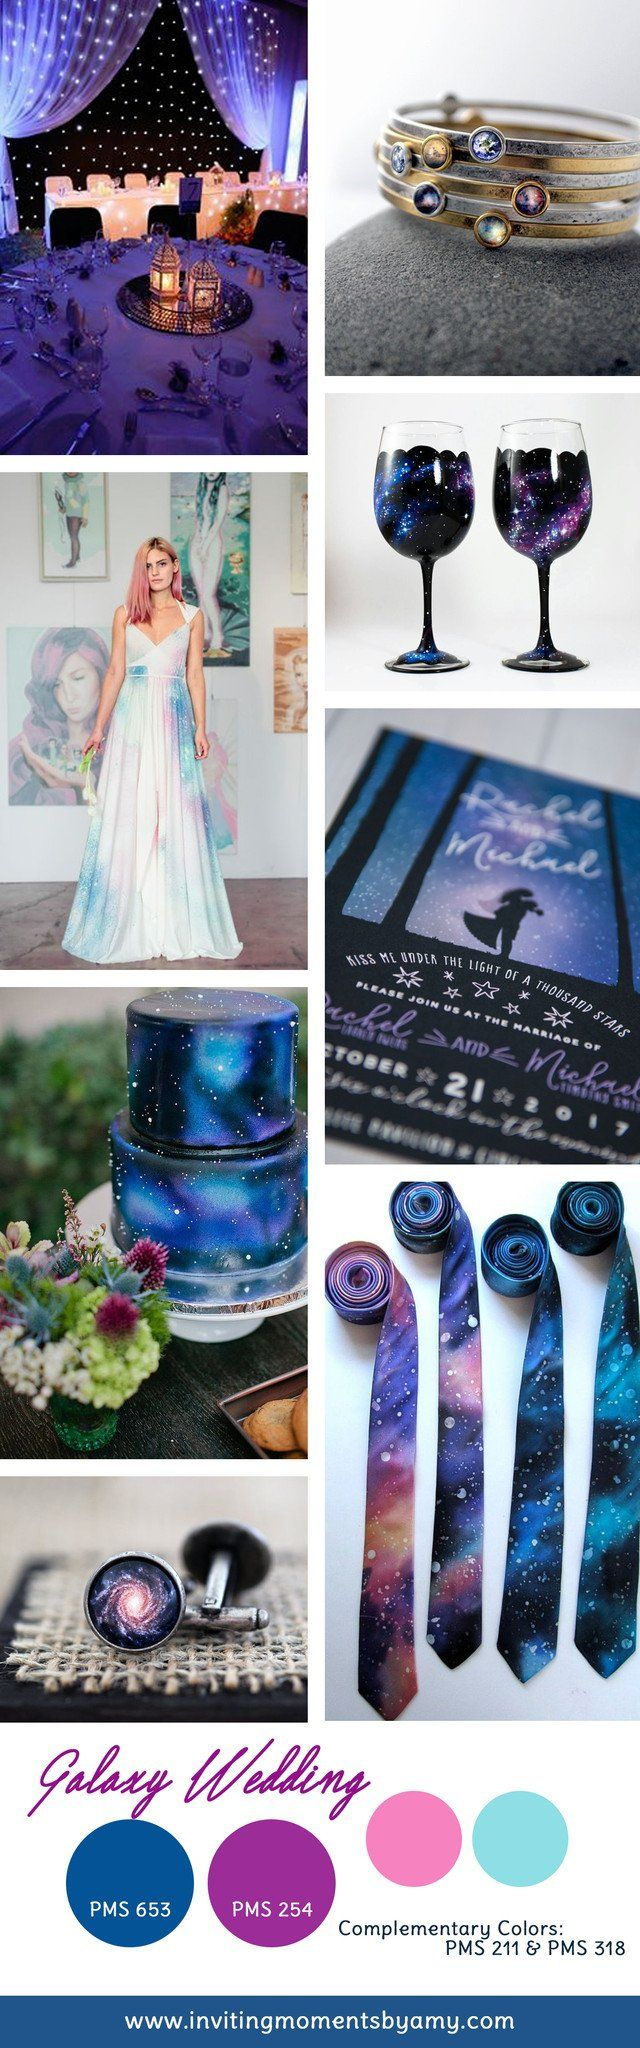 Galaxy Wedding Theme and Colors, Starry night wedding reception, wedding under the stars, galaxy wedding invitations